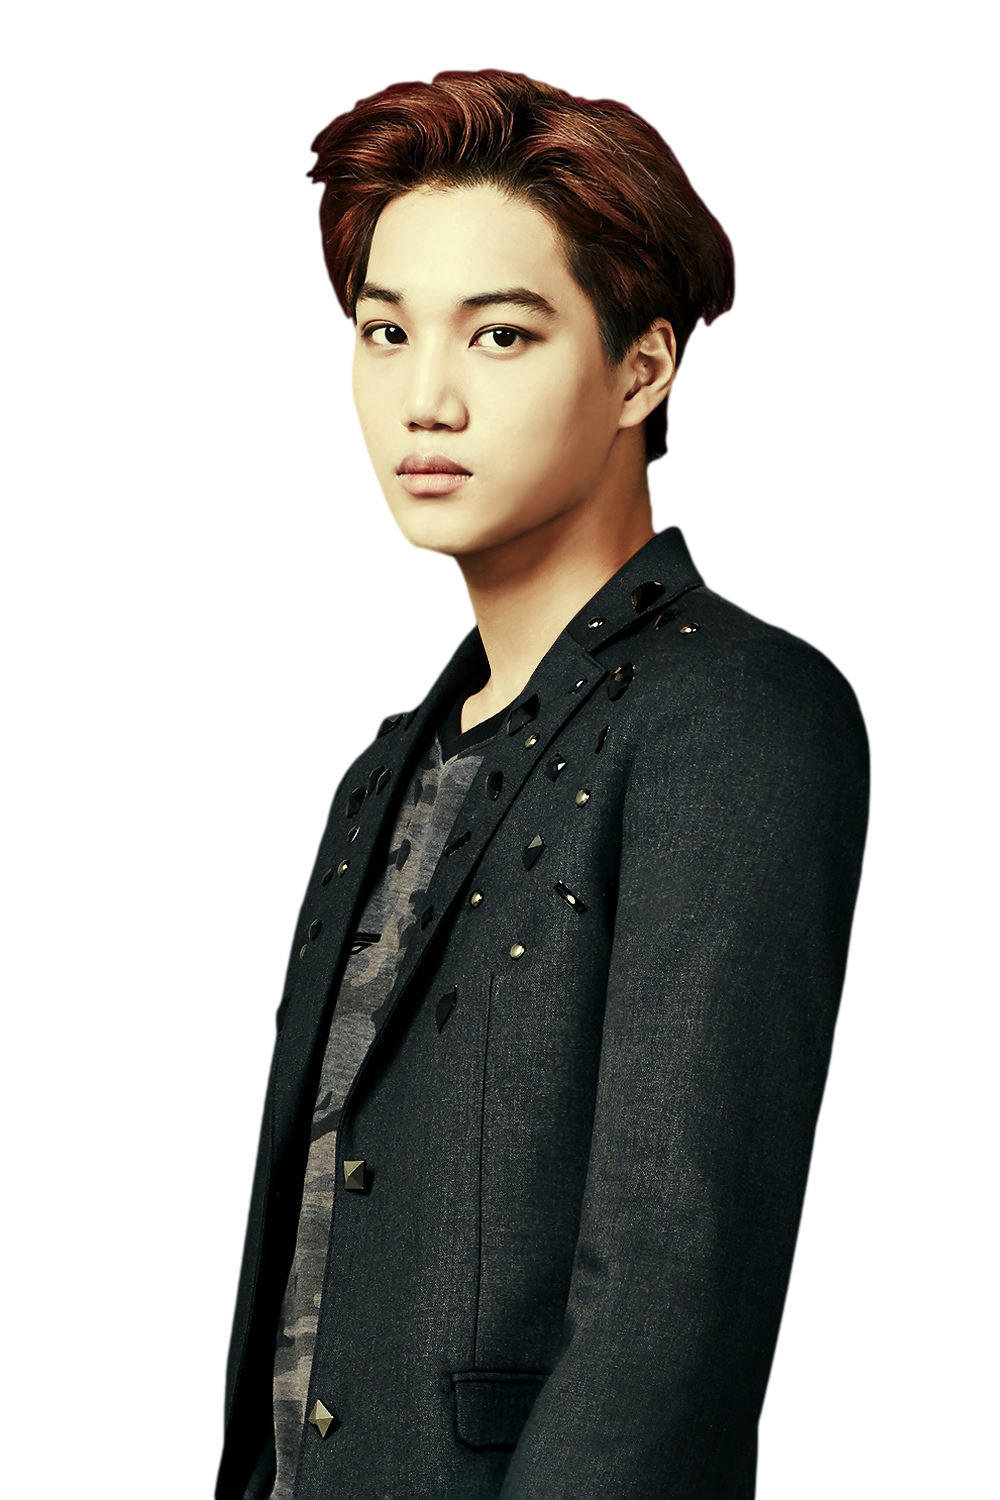 PNG {EXO-Kai} by yeolsshiExo7 by yeolsshiExo7 on DeviantArt